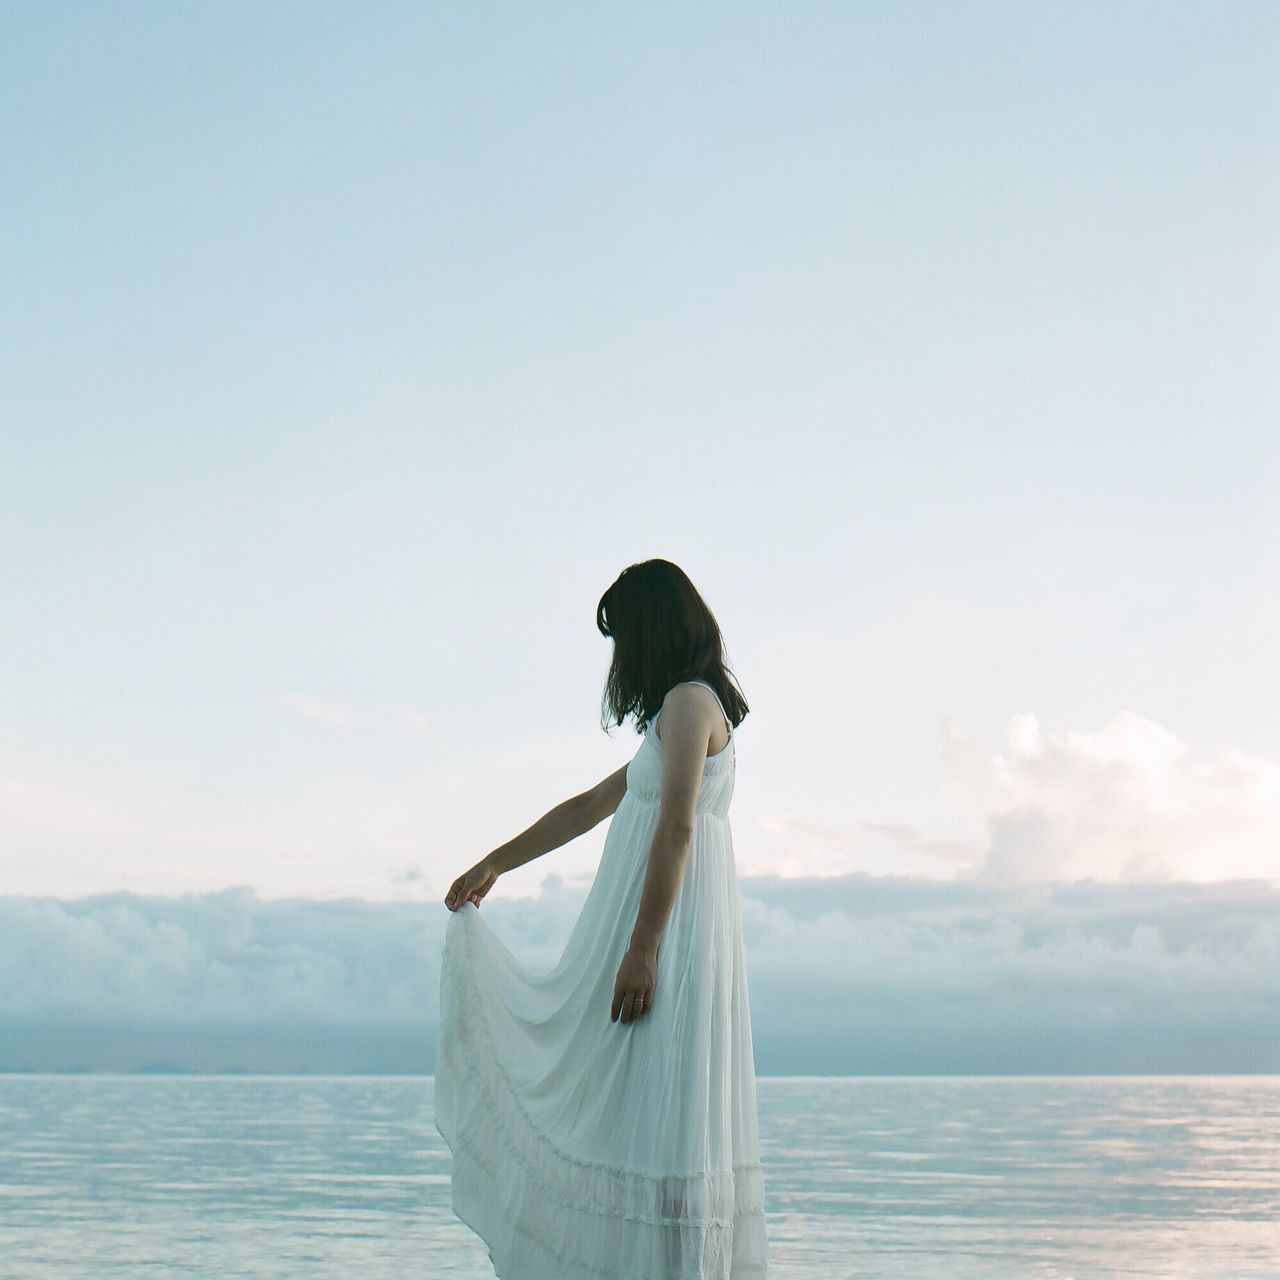 sea, water, horizon over water, sky, standing, copy space, nature, beauty in nature, day, outdoors, scenics, tranquil scene, cloud - sky, women, wedding dress, one person, real people, beach, young adult, bride, young women, people